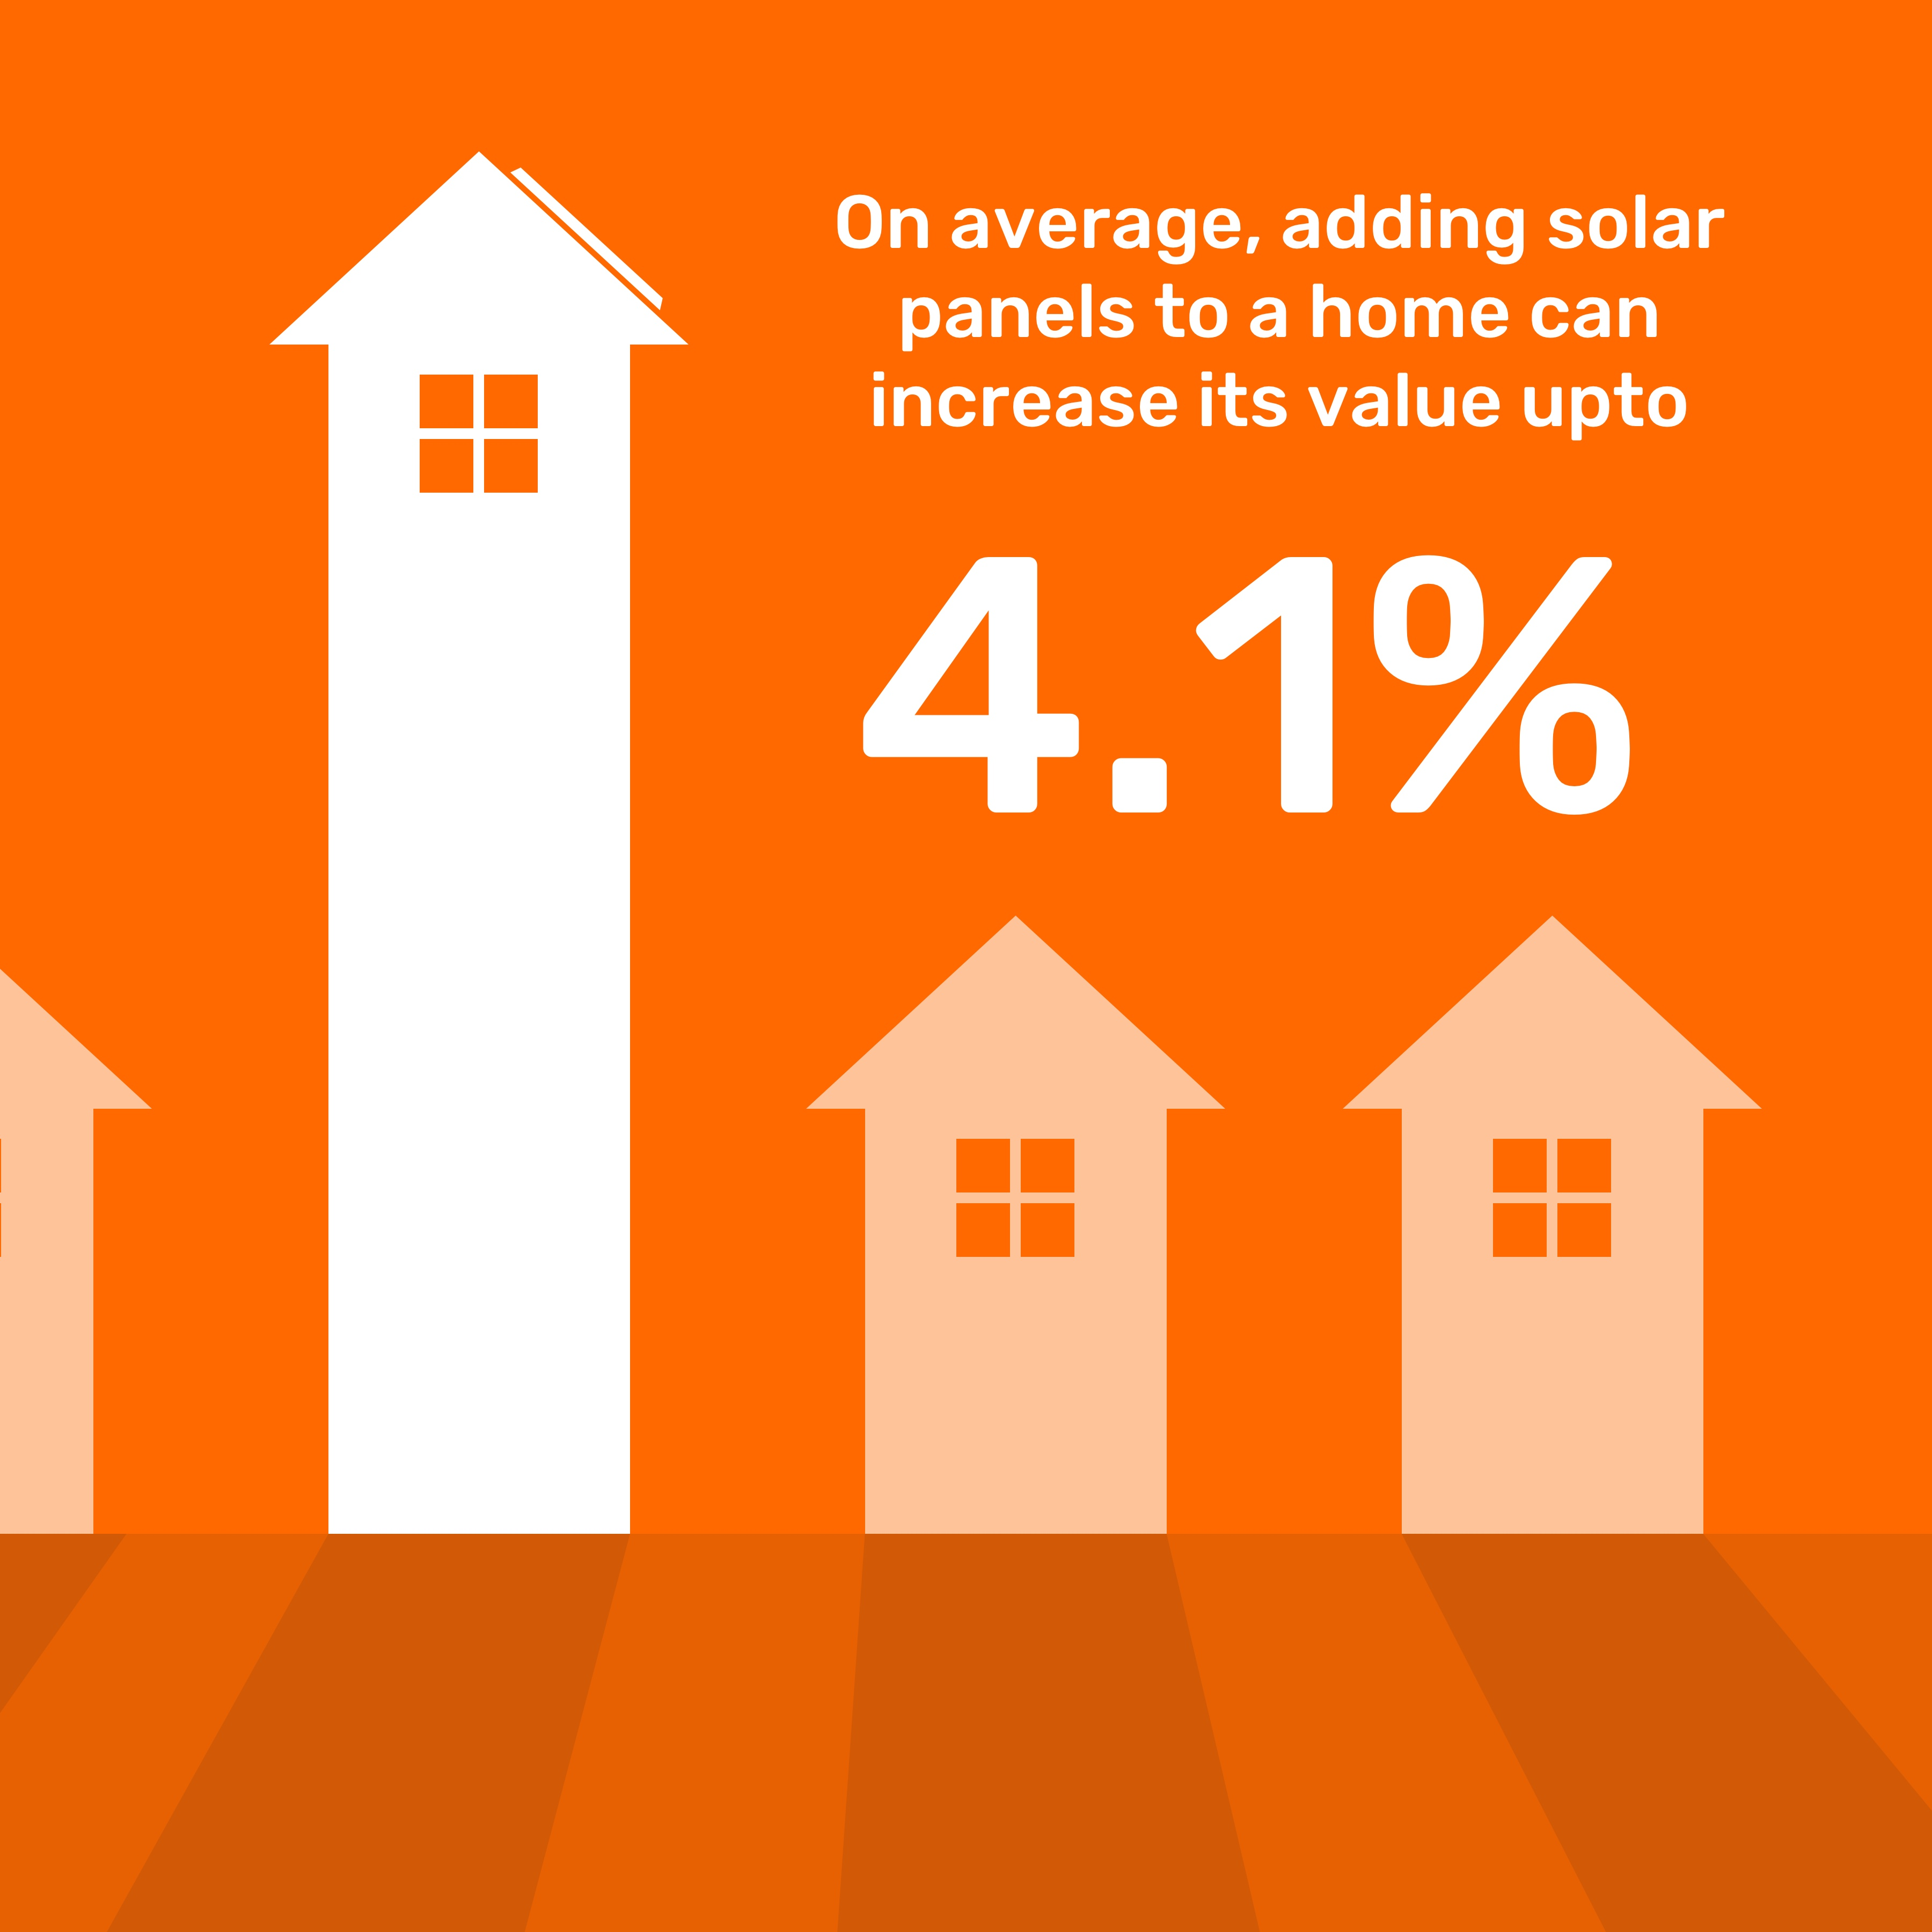 solar panels increase home value by an average of 4.1%